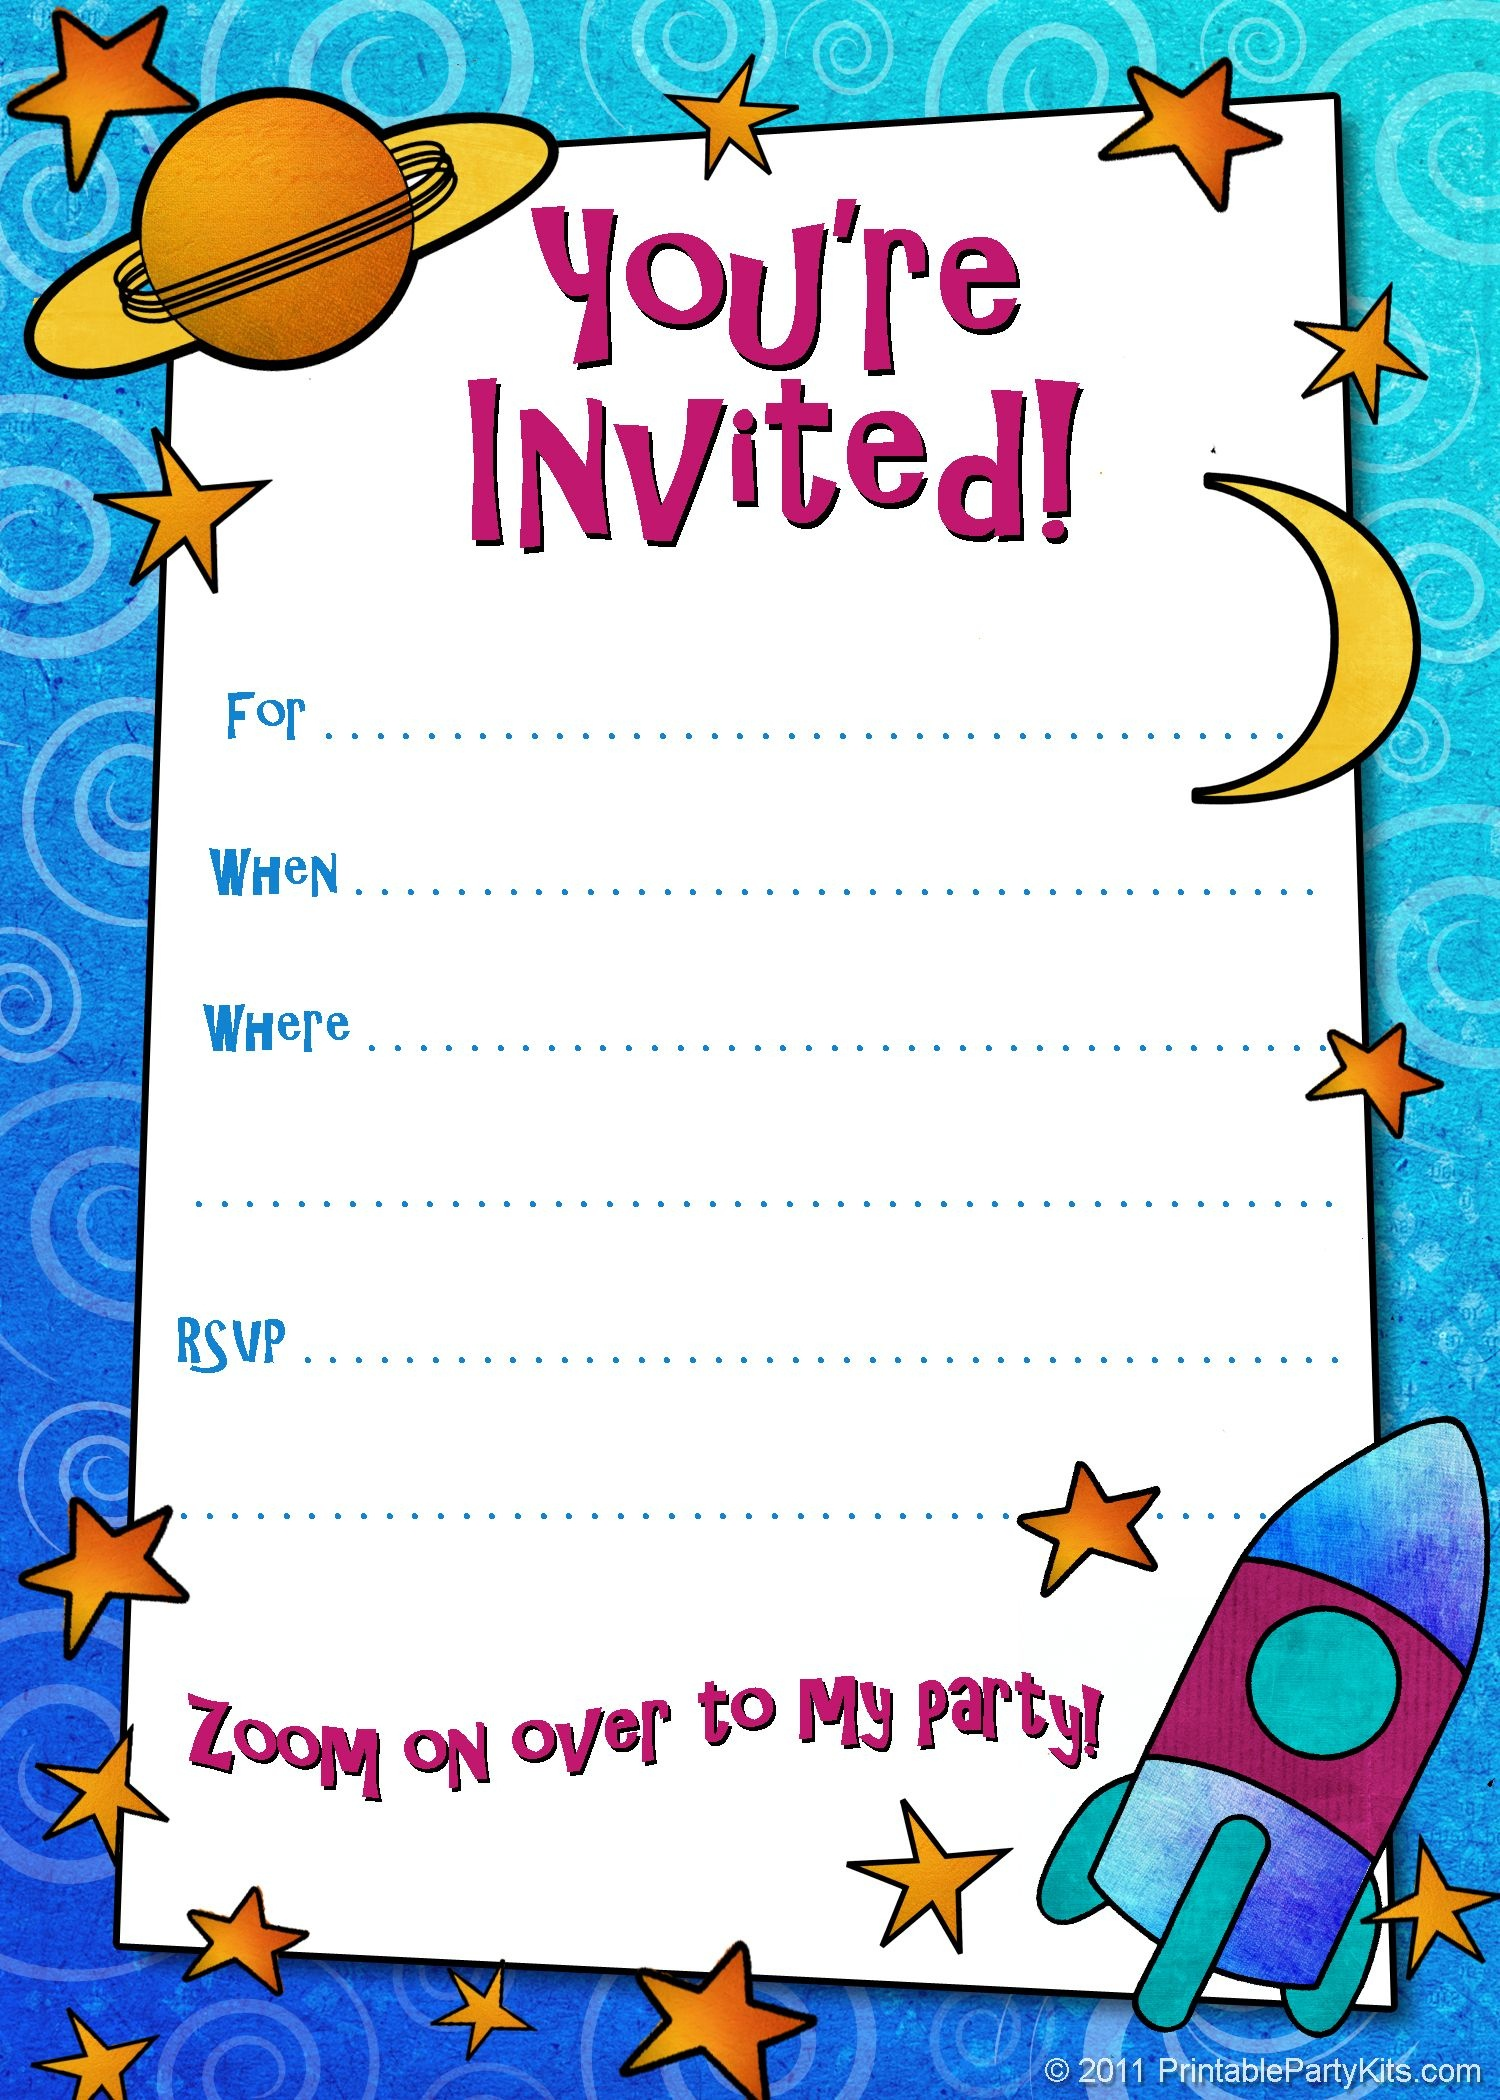 Free Printable Boys Birthday Party Invitations | Birthday Party - Free Printable Toddler Birthday Invitations